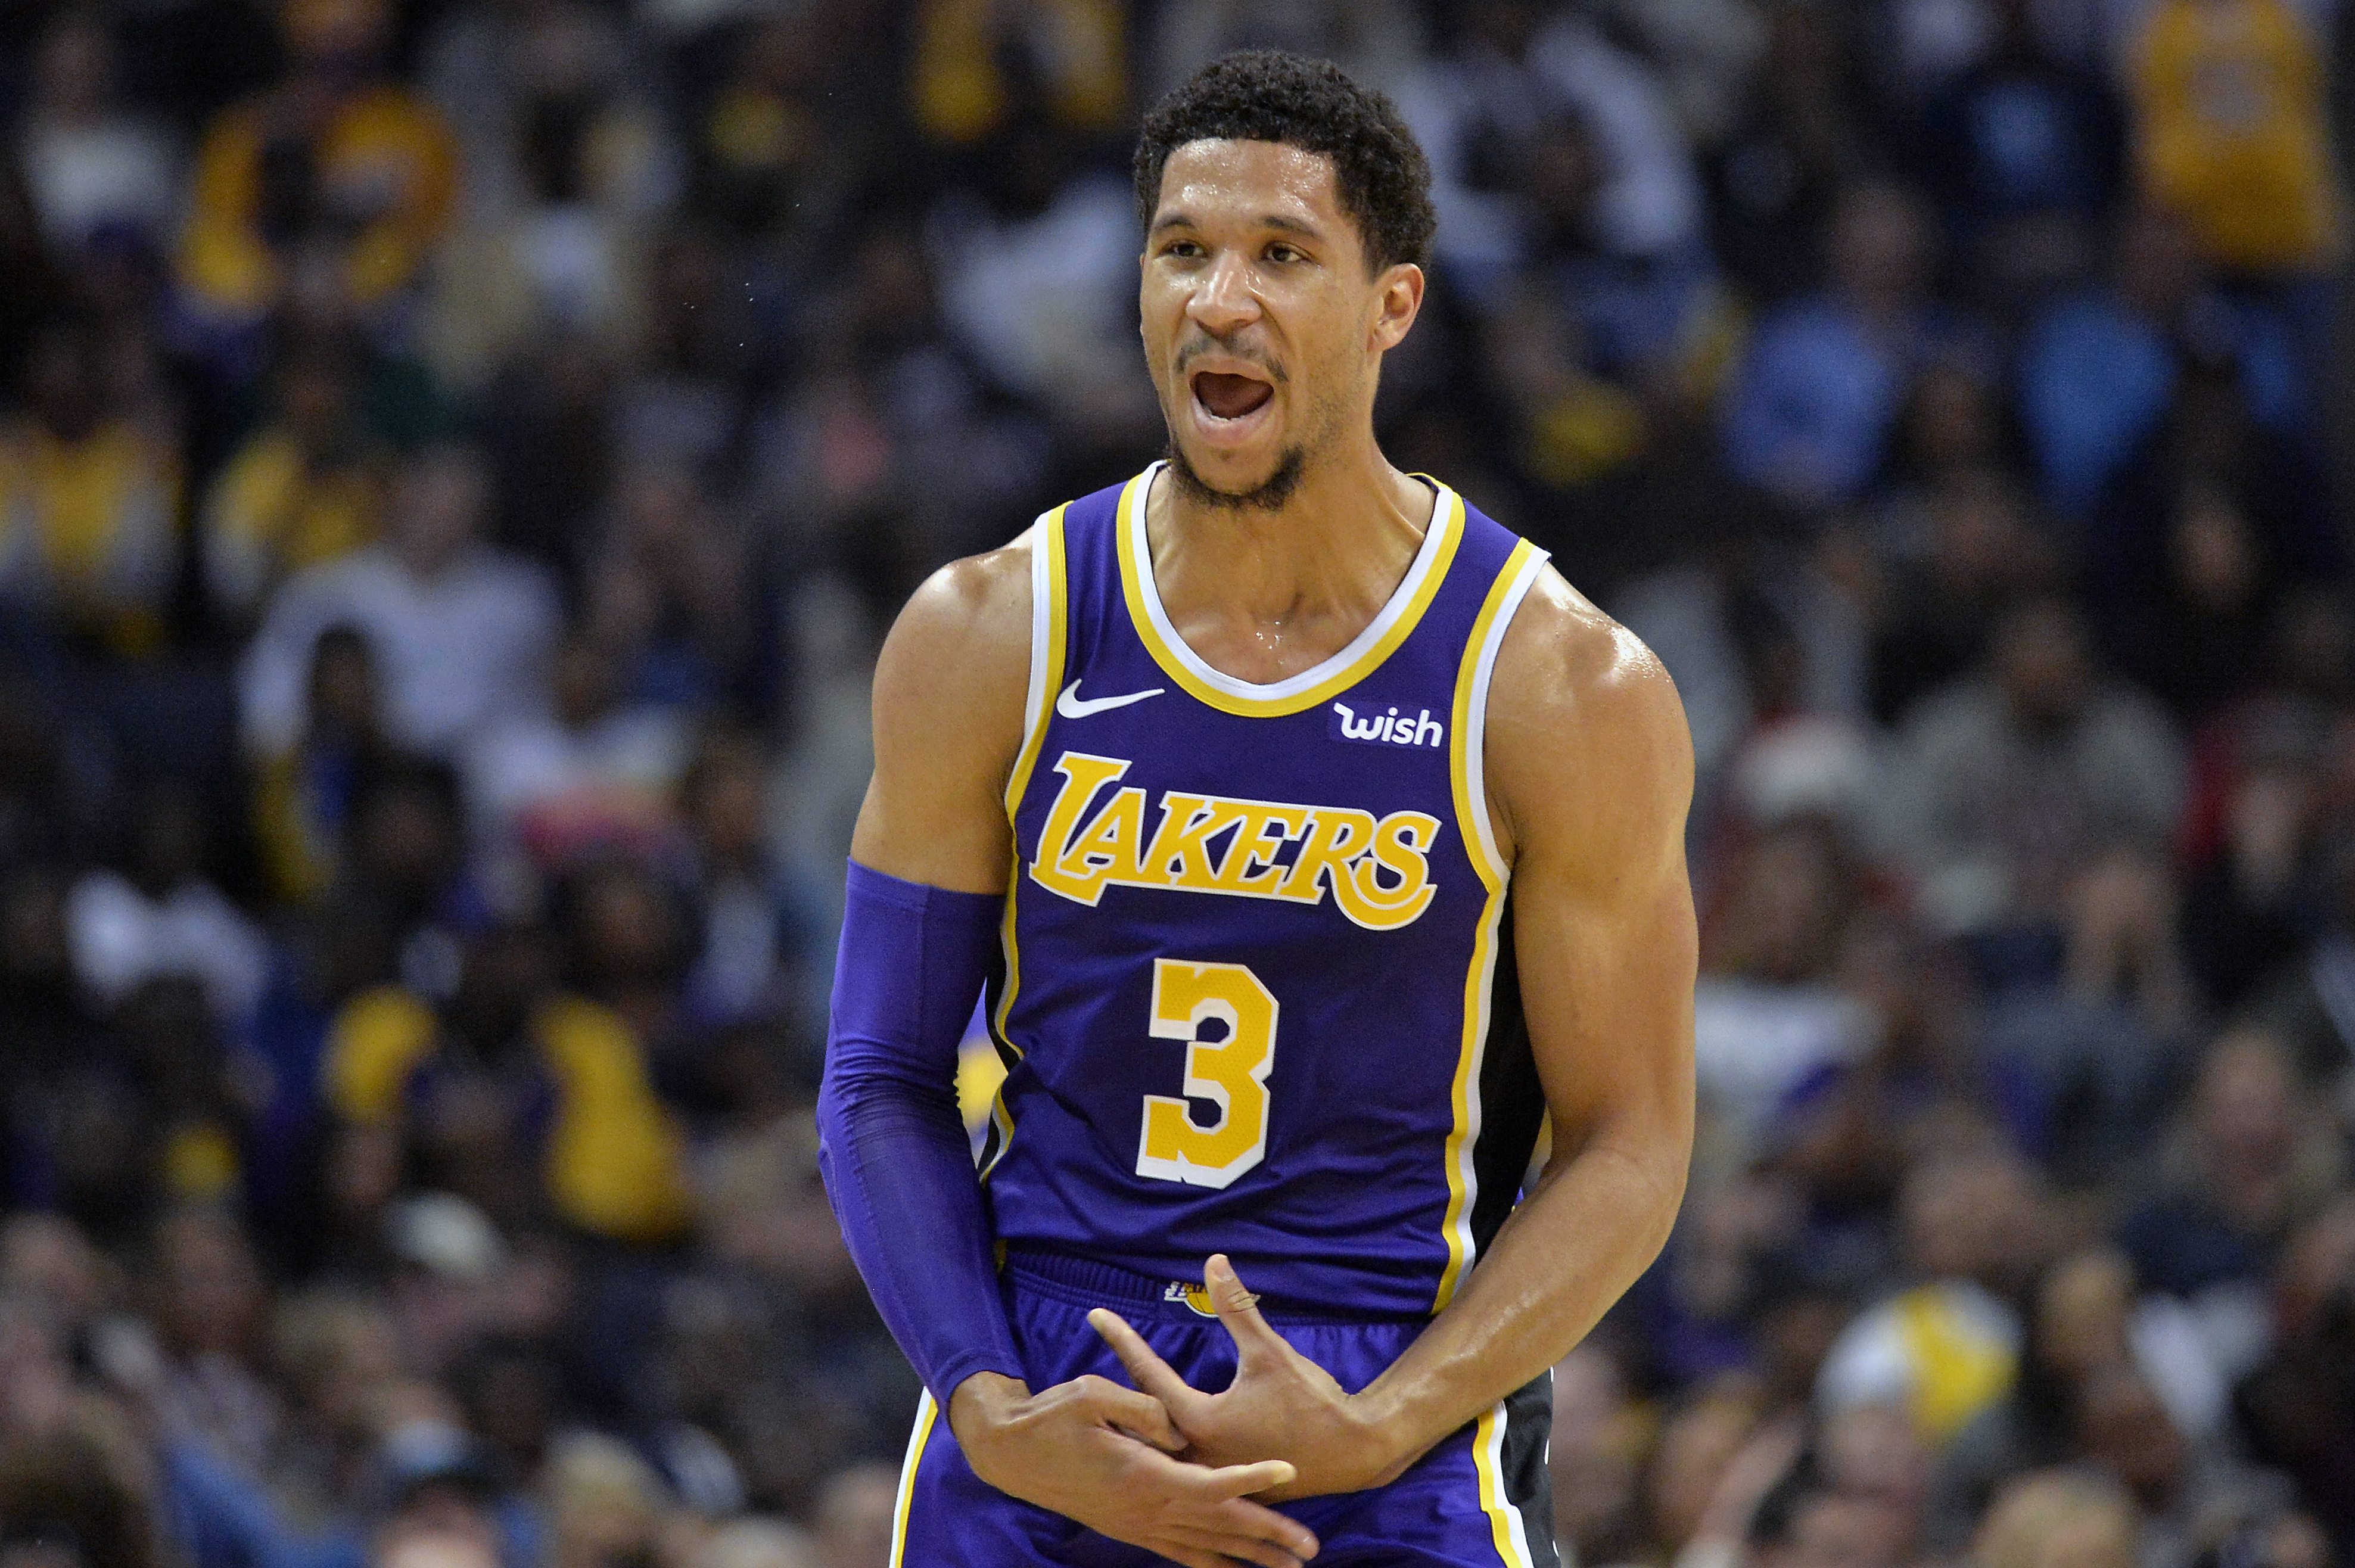 Los Angeles Lakers guard Josh Hart (3) reacts after scoring a 3-point shot in the first half of an NBA basketball game against the Memphis Grizzlies on Saturday, Dec. 8, 2018, in Memphis, Tenn. (AP Photo/Brandon Dill)